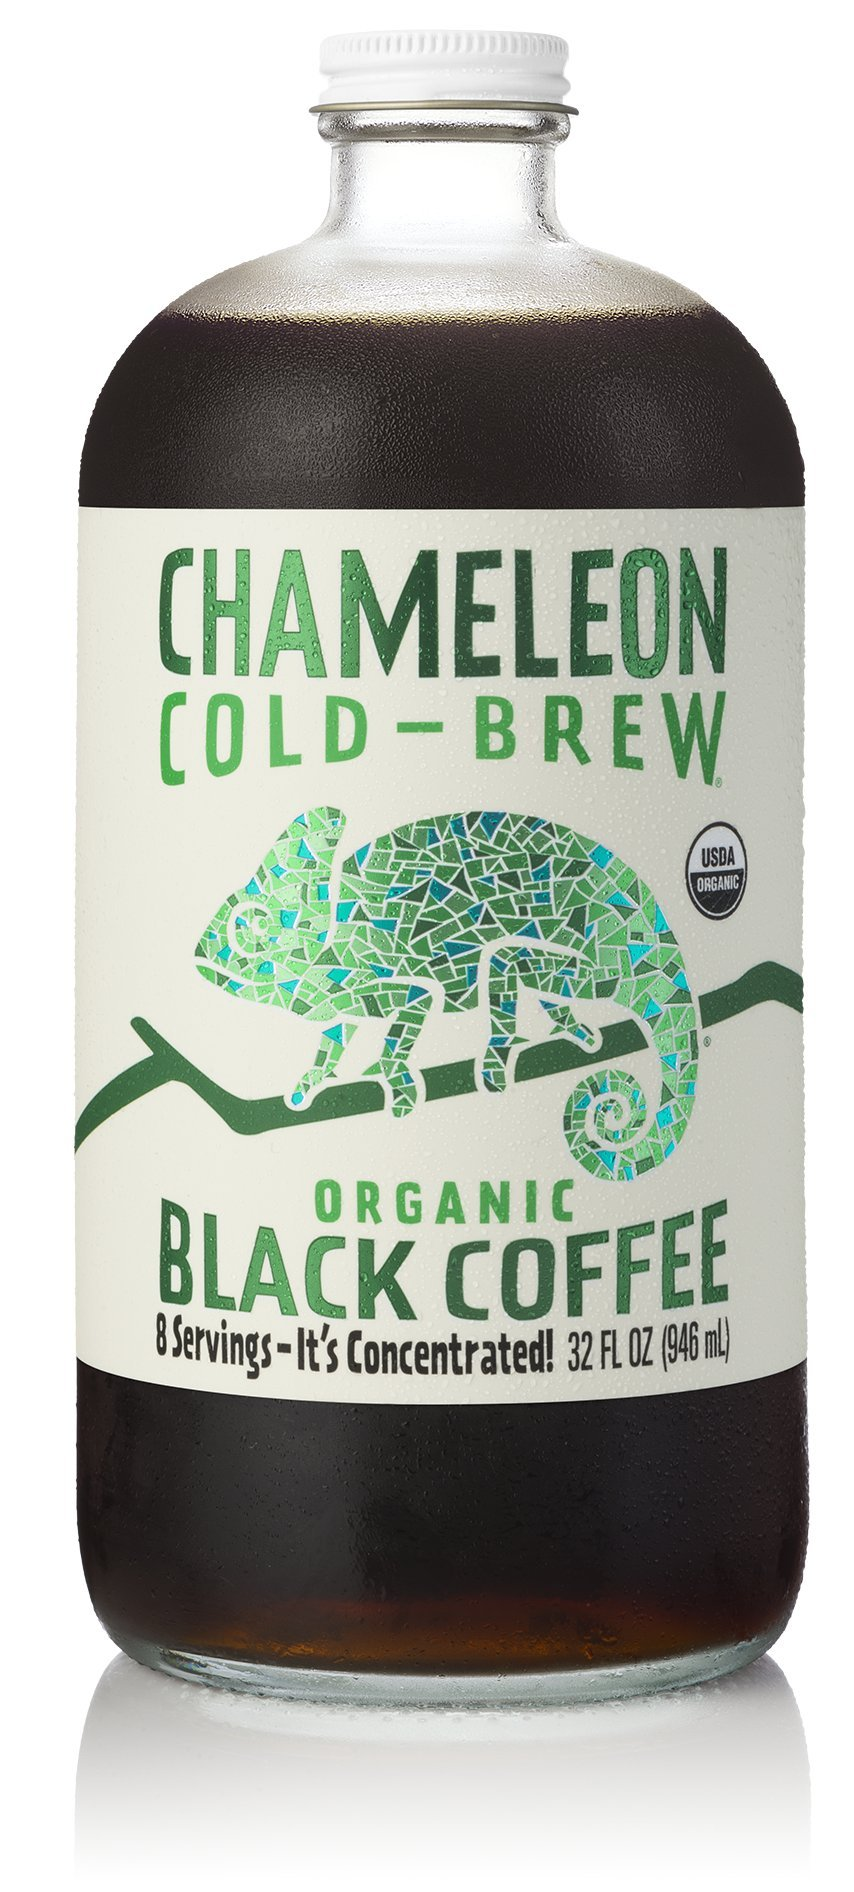 Chameleon Cold-Brew Black Coffee Concentrate 6 pack by Chameleon Cold Brew